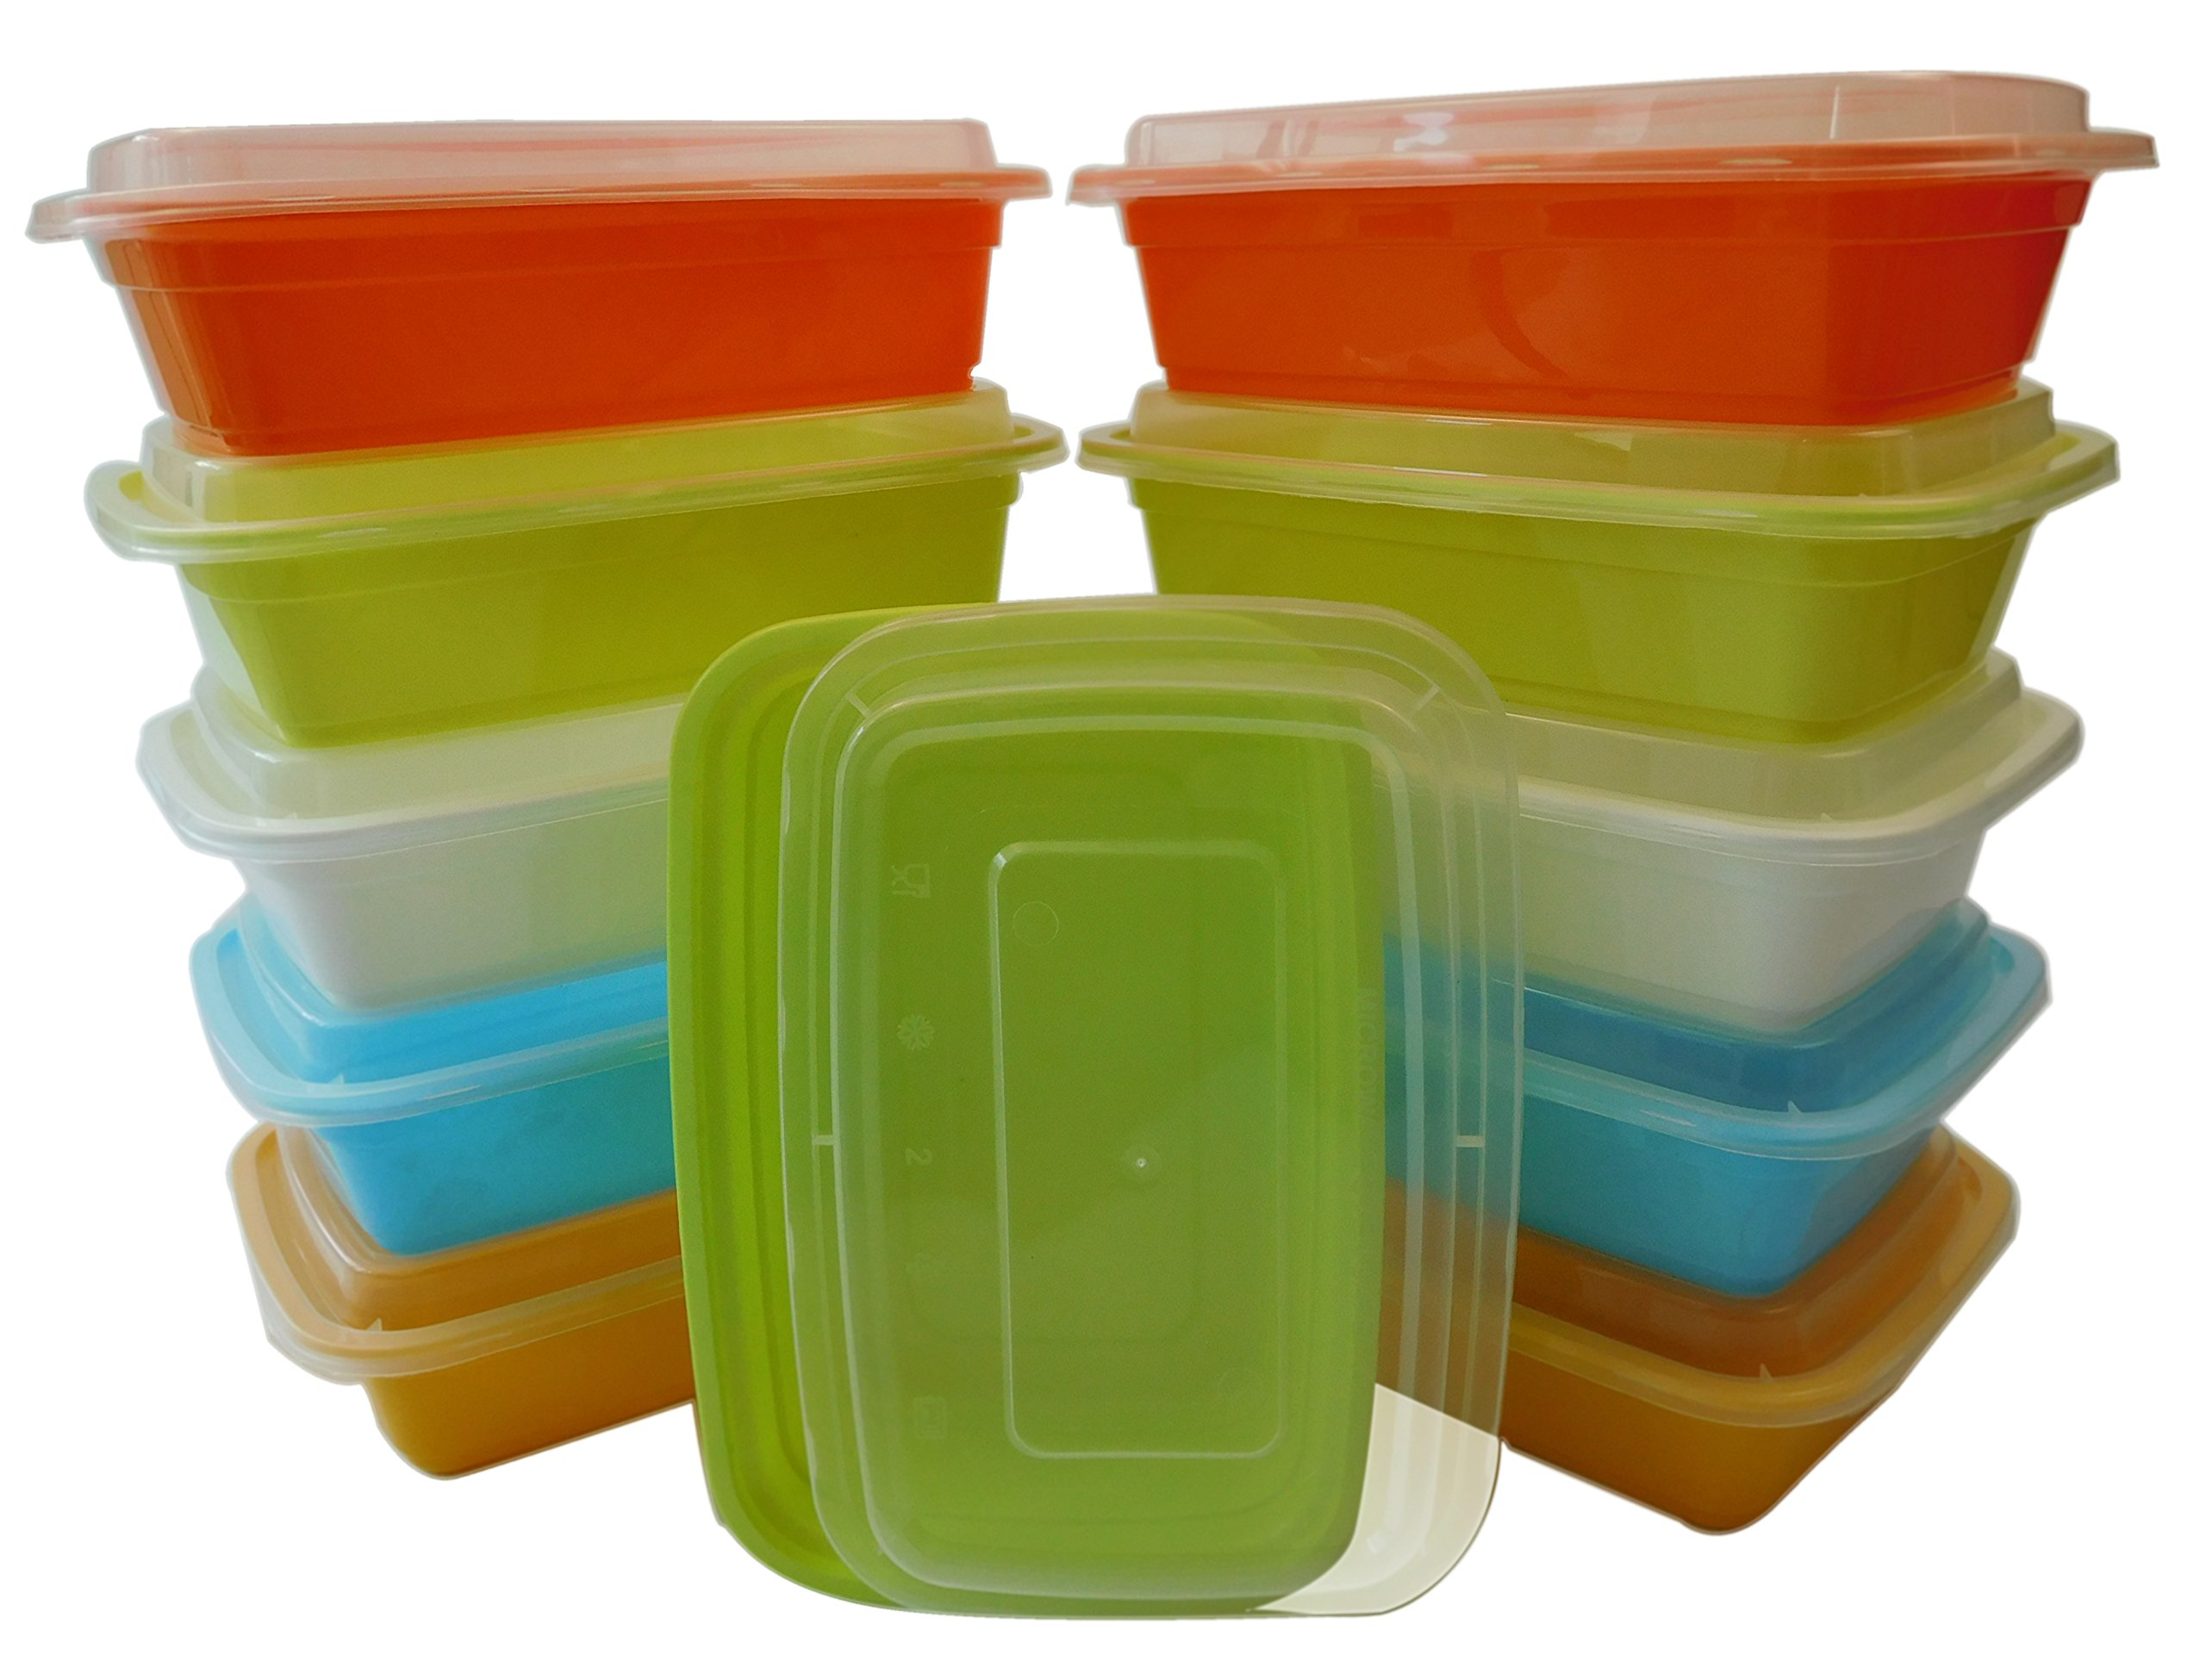 Table To Go 240-Pack Bento Lunch Boxes with Lids (1 Compartment/ 34 oz) (Multicolor Pack)